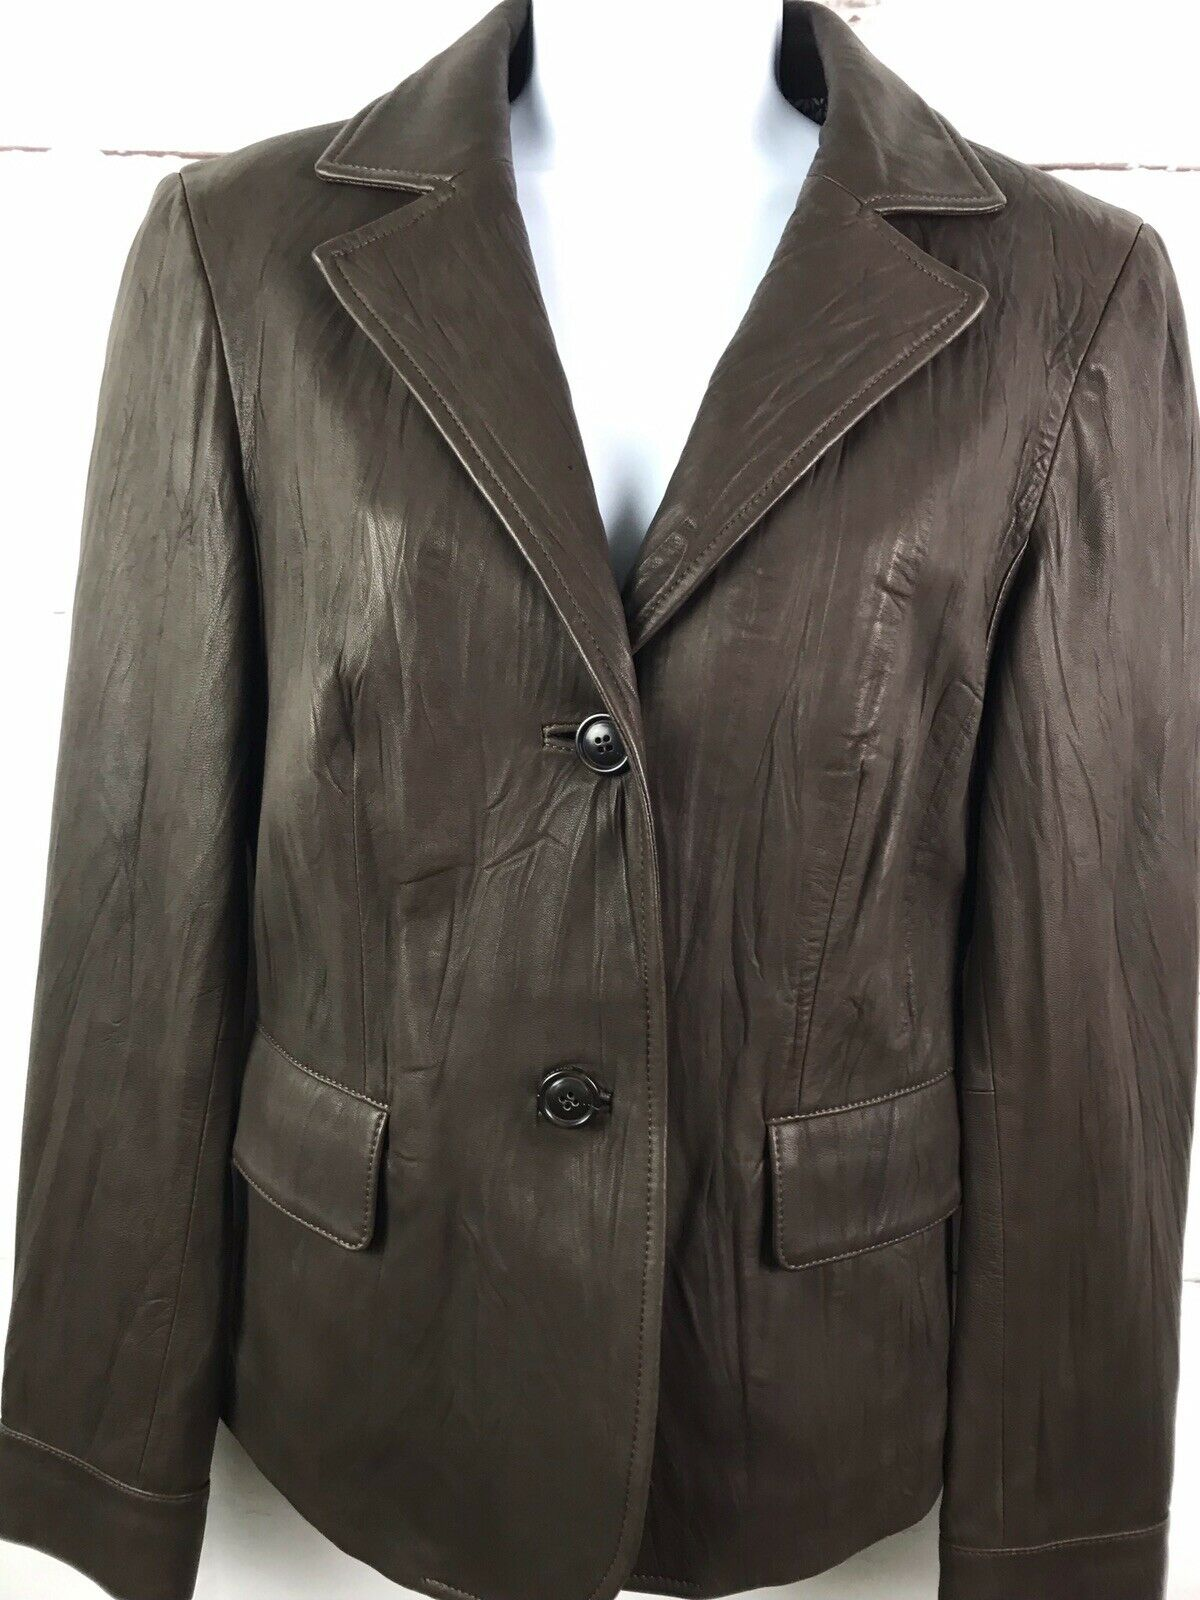 Women's Cole Haan Lambskin Leather Jacket Size 4 2 Button Brown Pockets